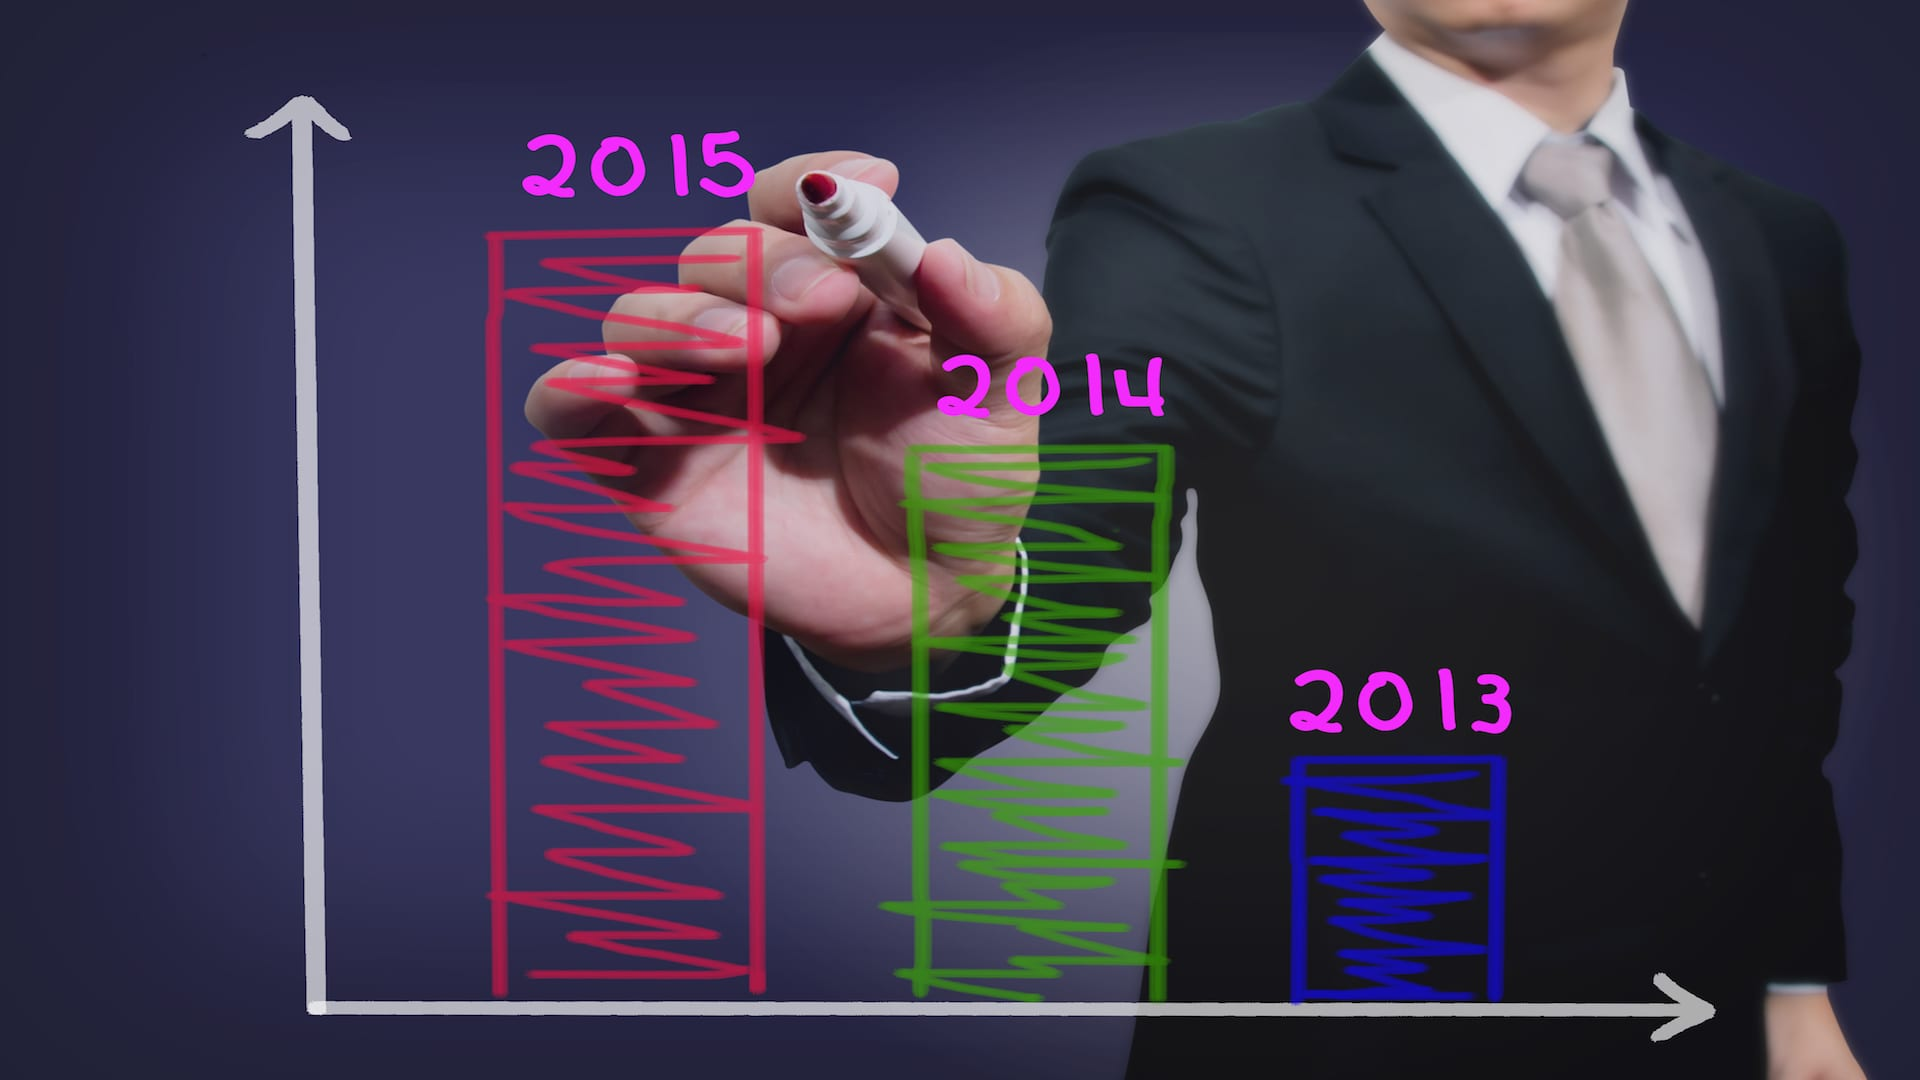 B2B marketing practices in 2015